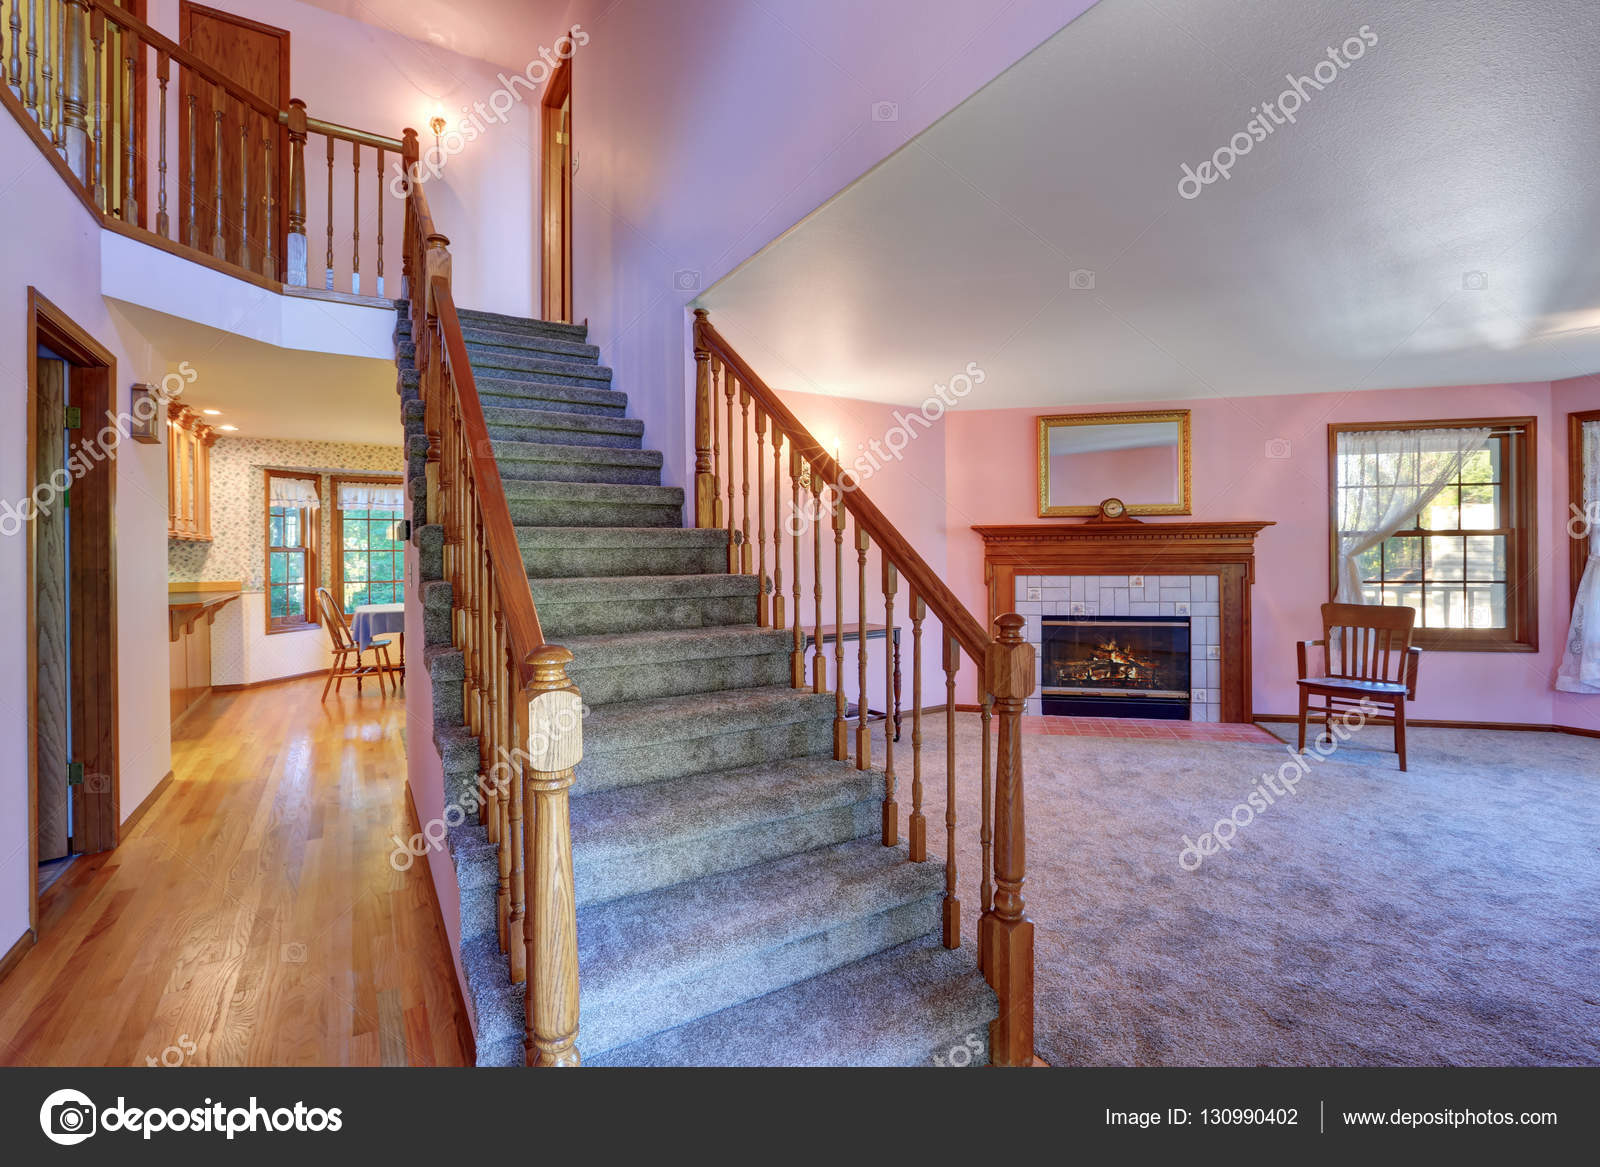 Living Room Hallway Paint Ideas Hallway Interior With Staircase And Living Room At The Back Stock Photo C Iriana88w 130990402